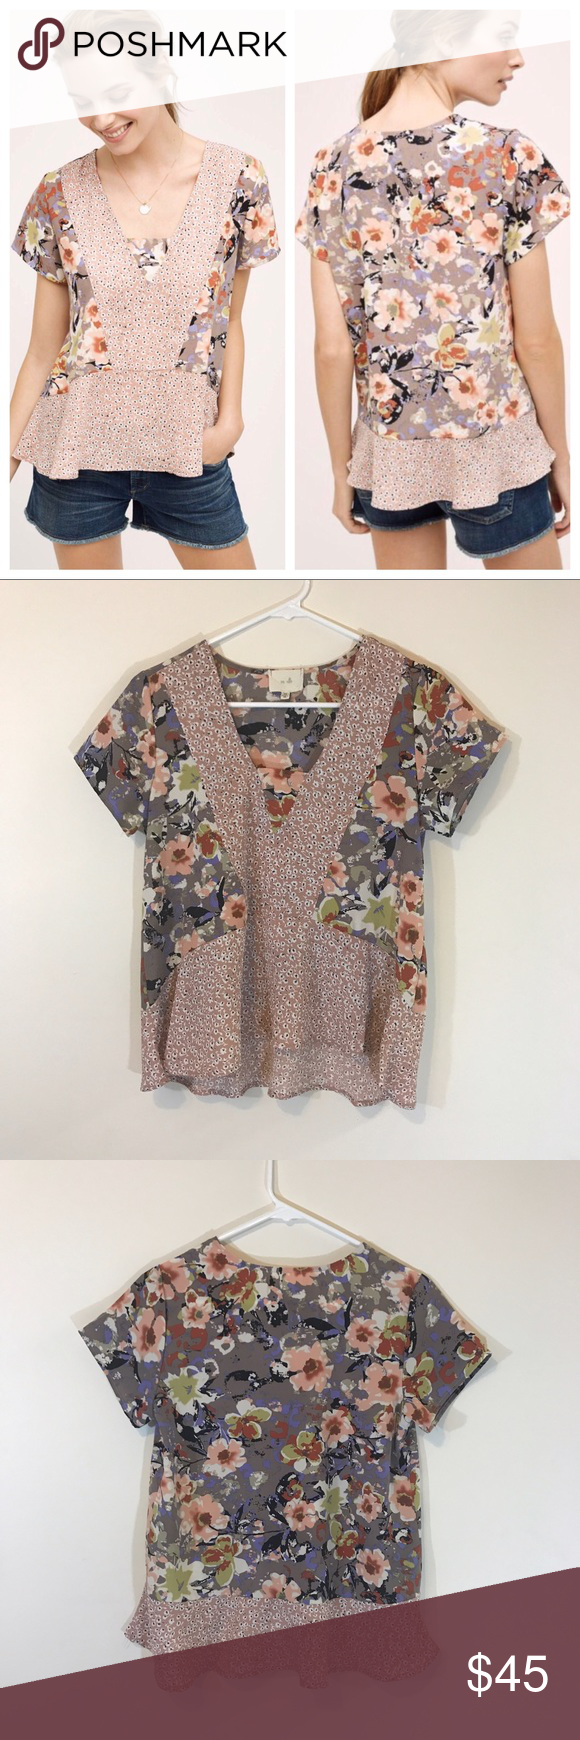 e571d1a58cc21 Anthropologie En Elle Verina Floral Peplum Top